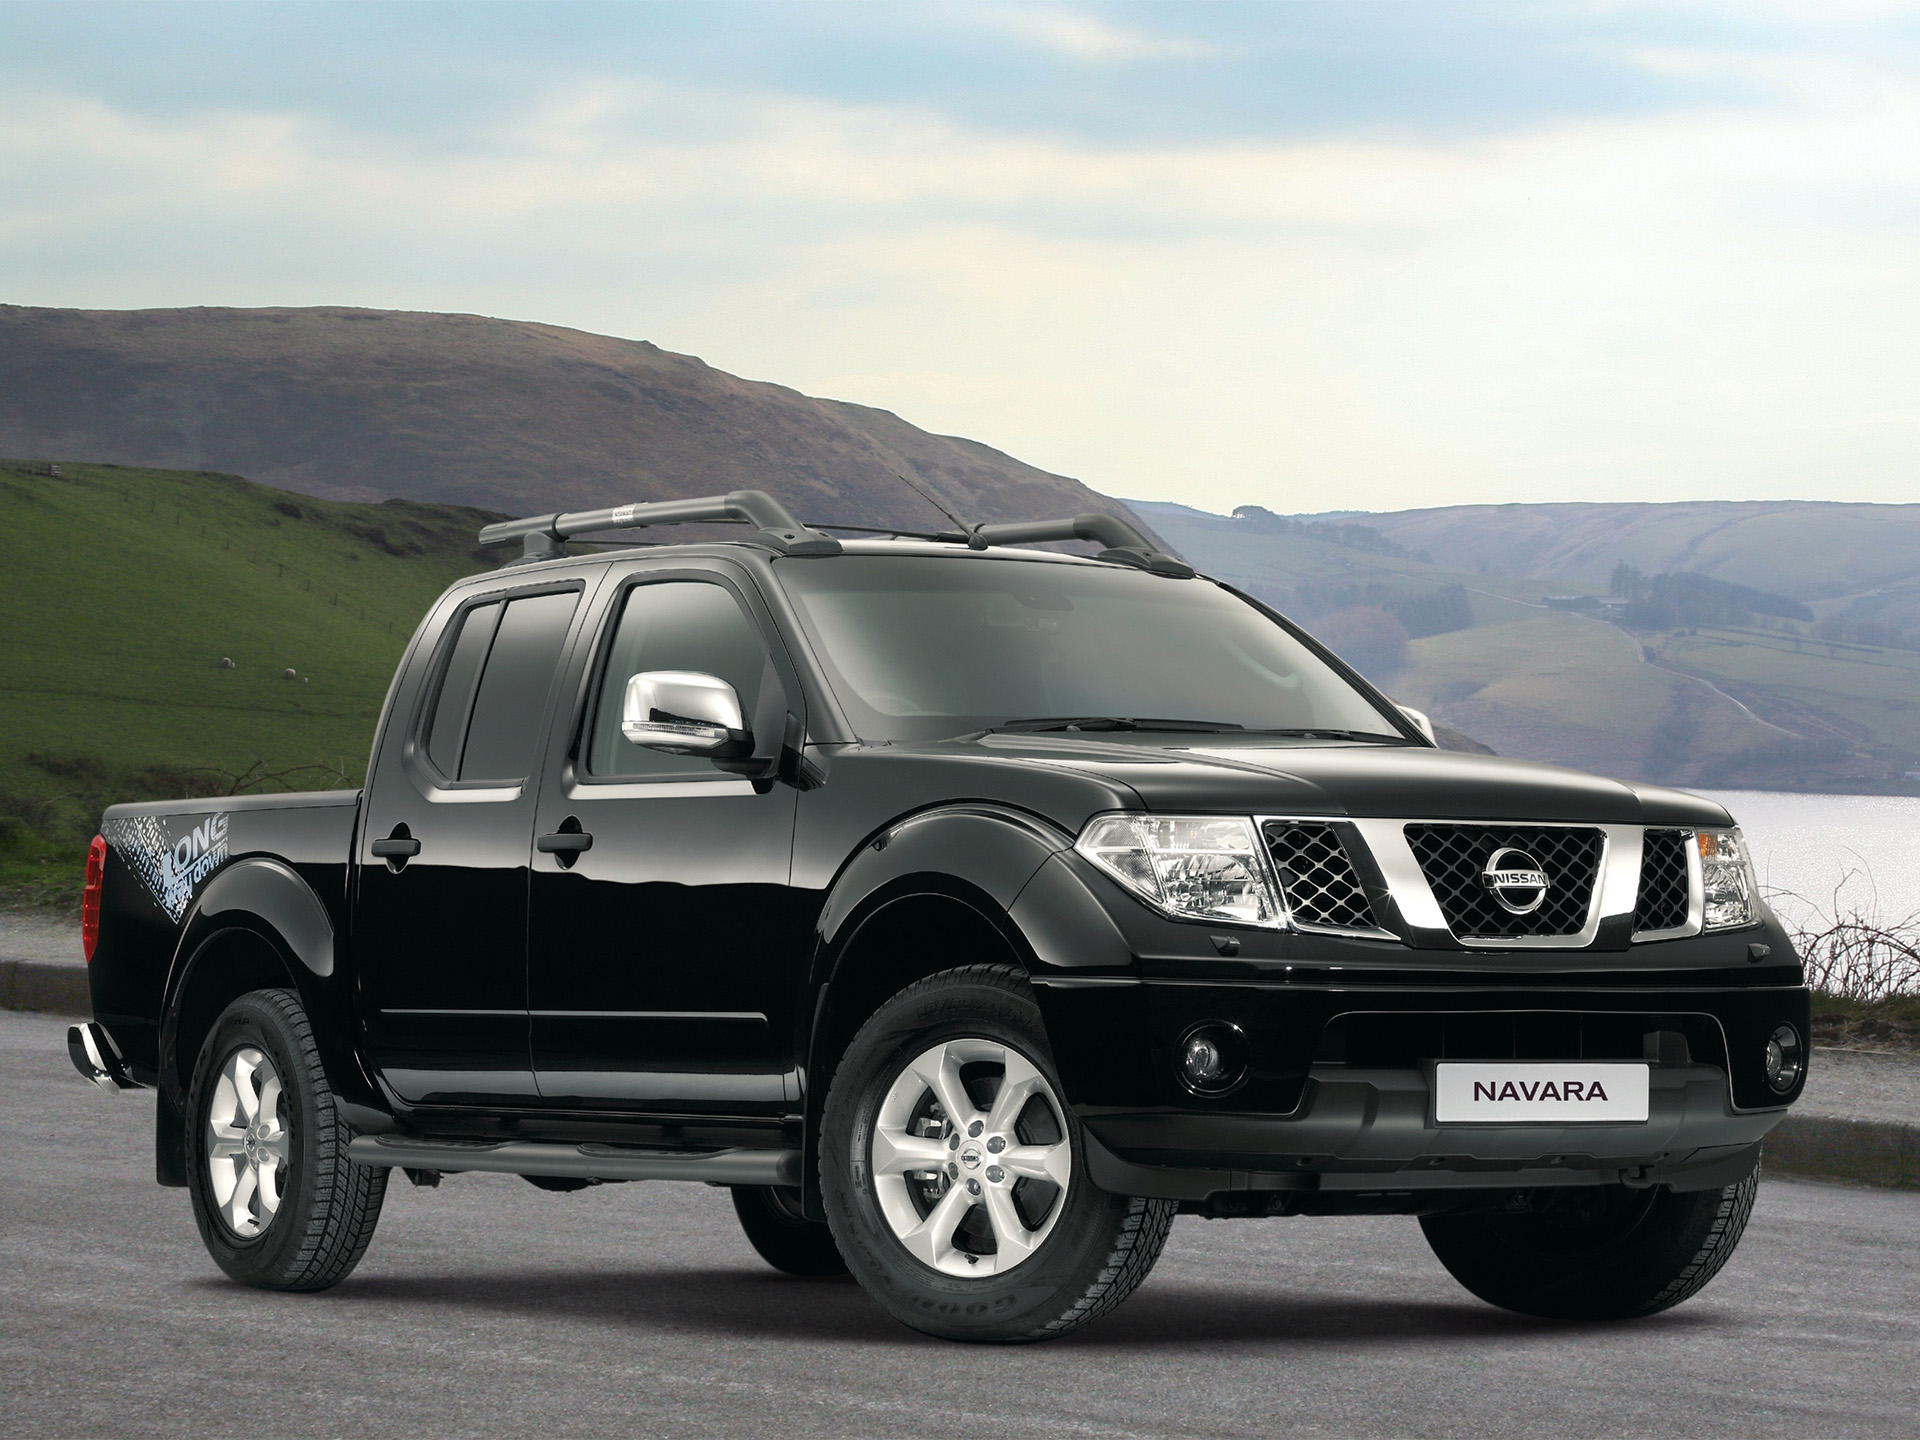 Nissan Navara photo 51822